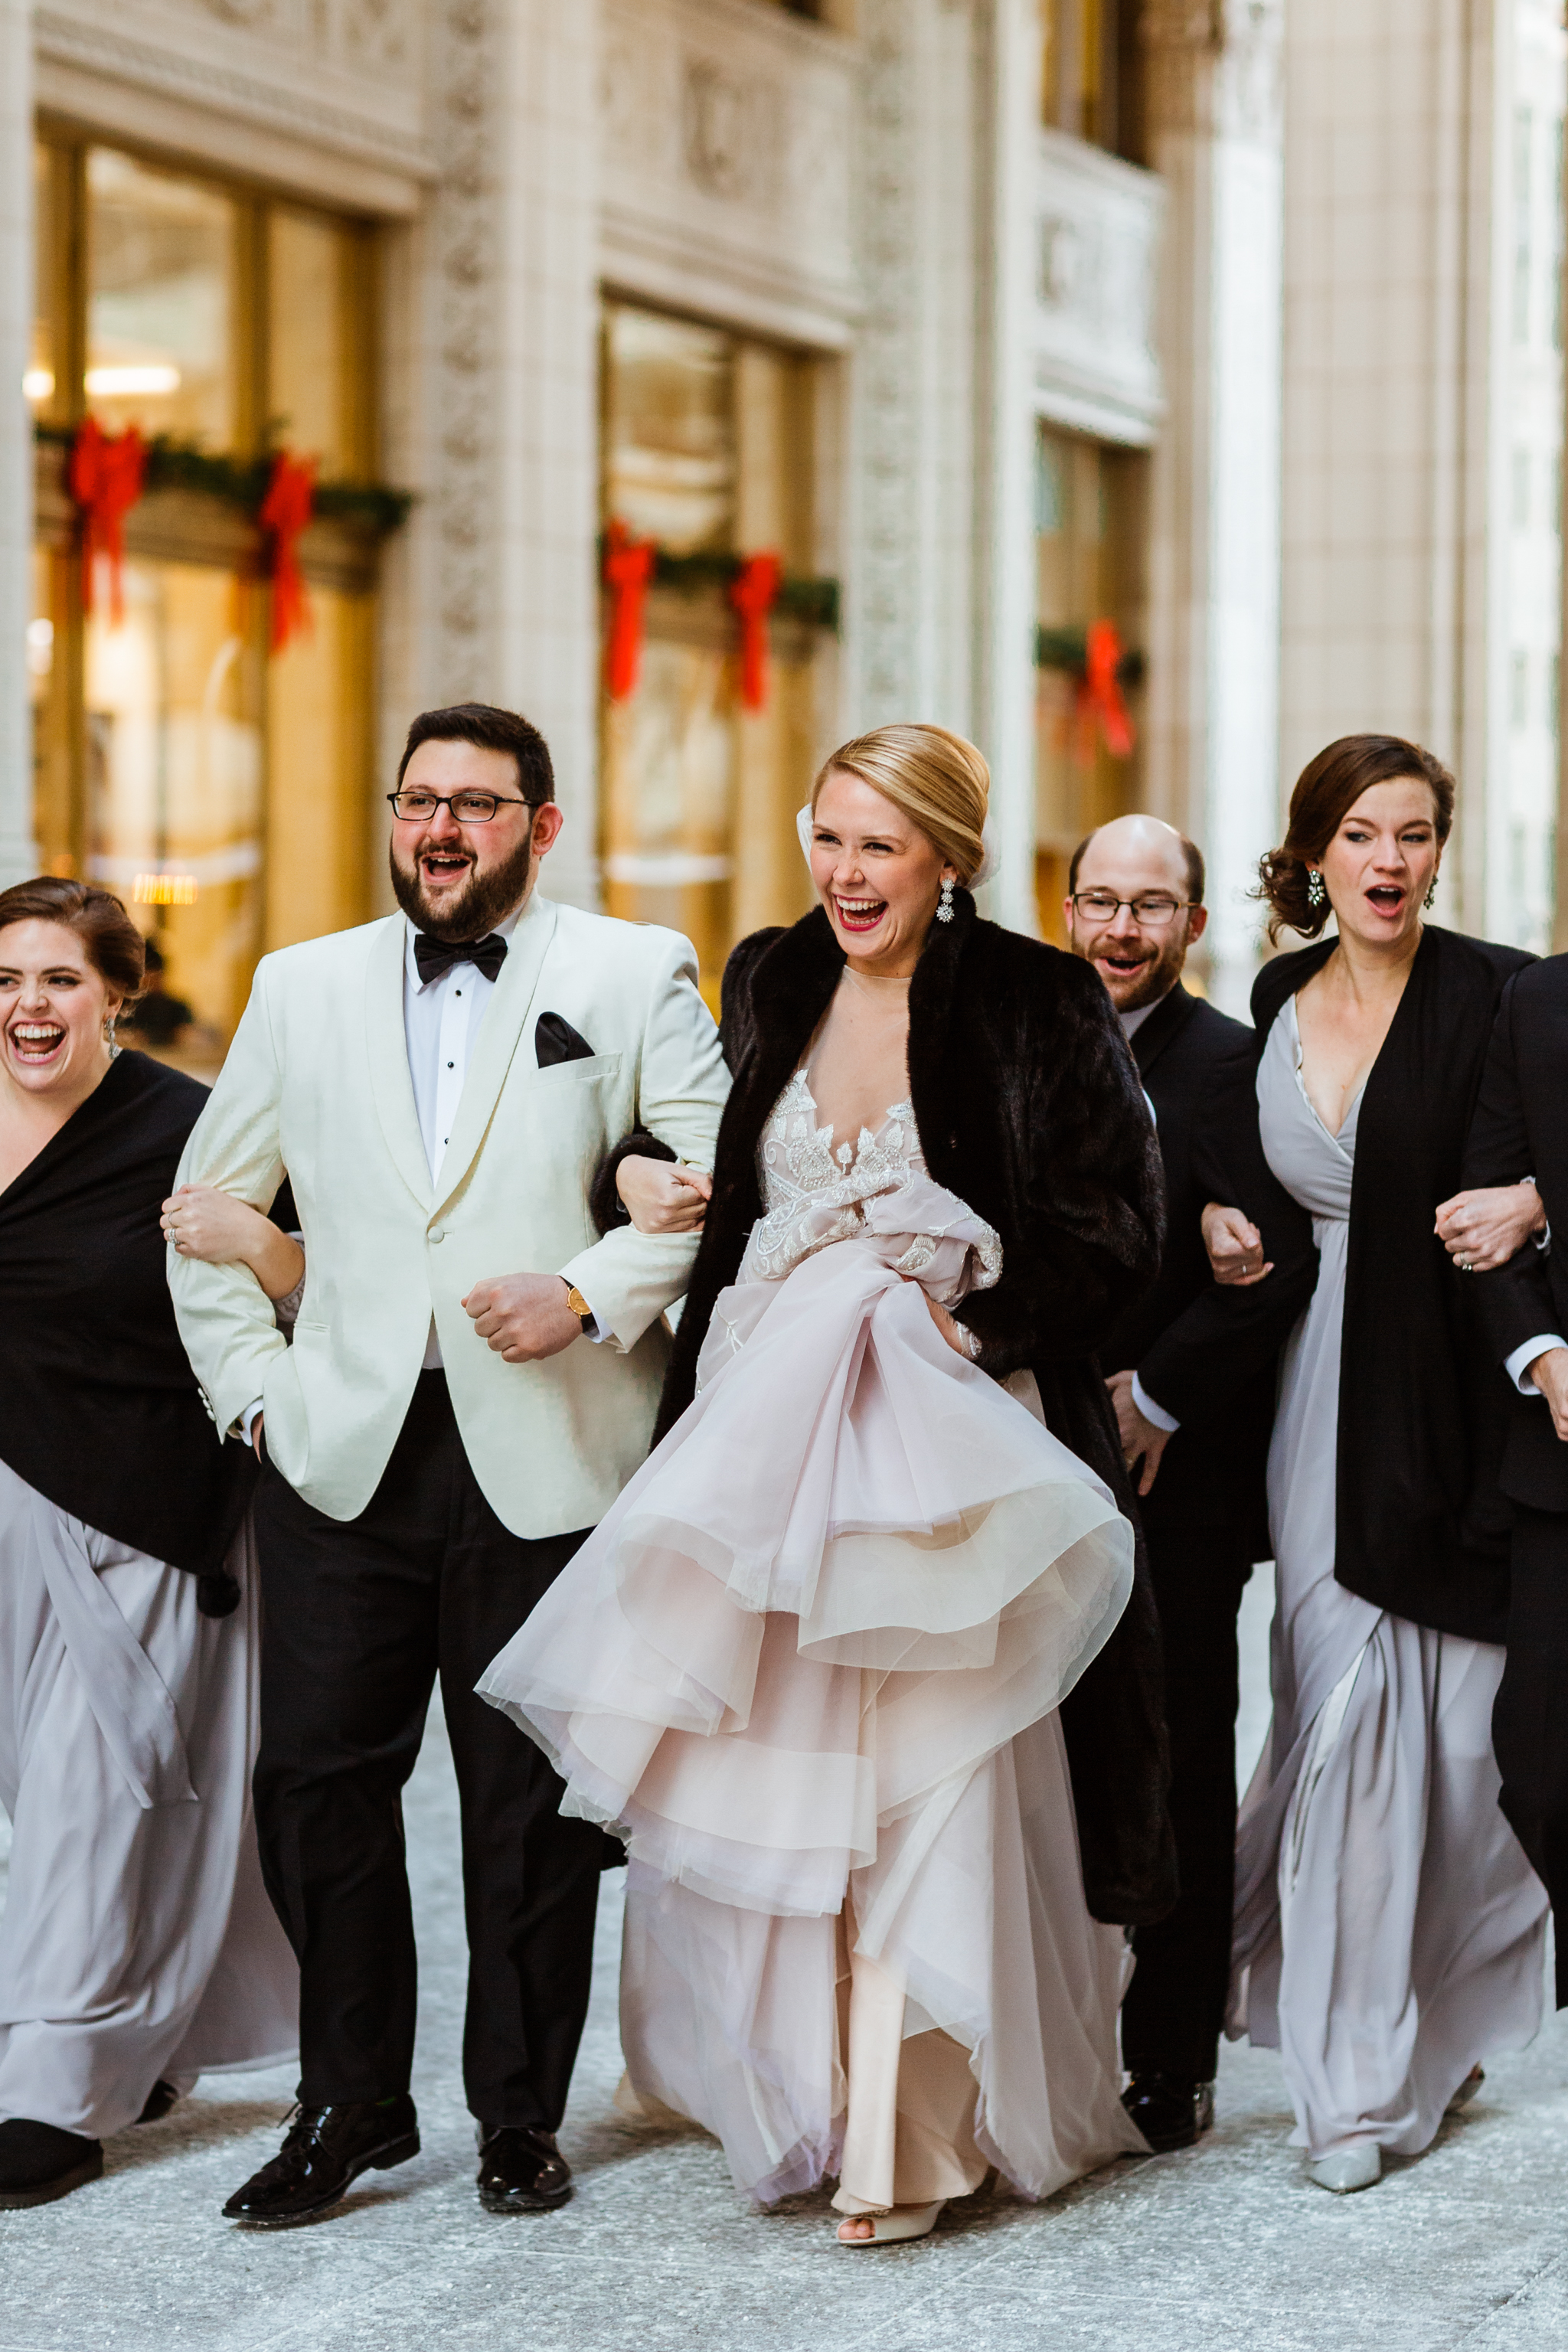 Bridal party running around downtown Chicago taking photographs